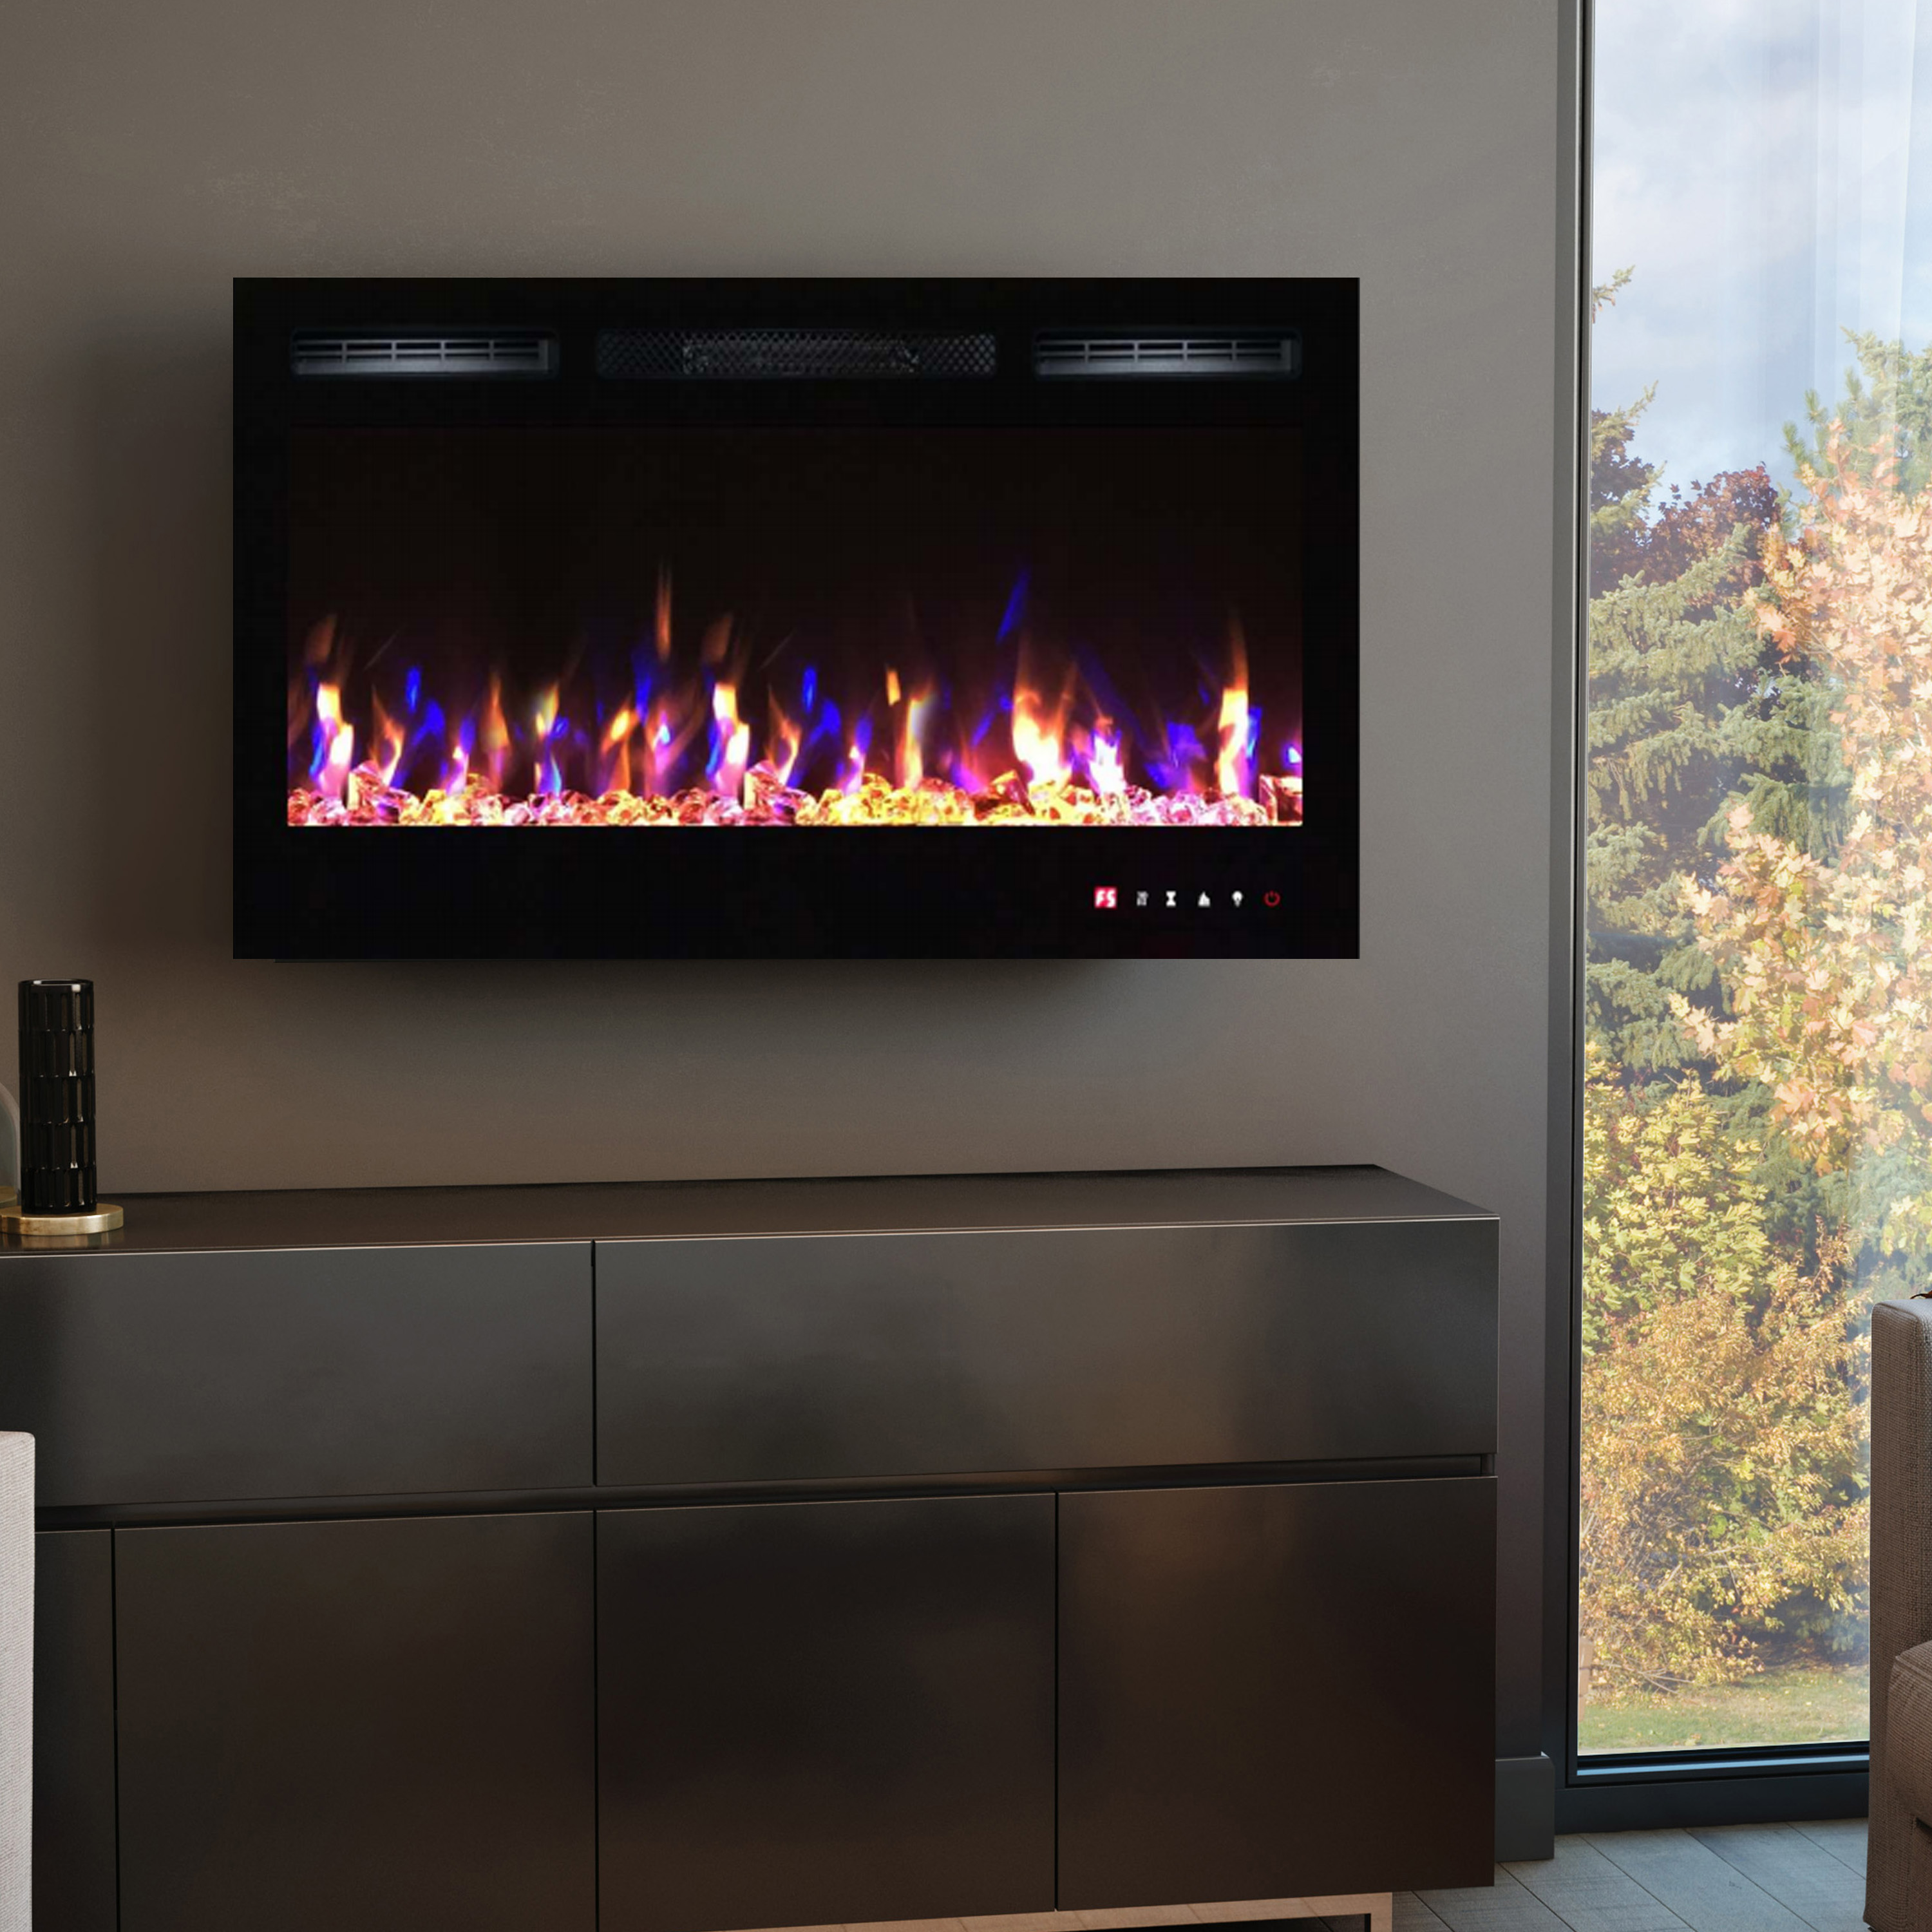 36 inch large wall mounted electric fire